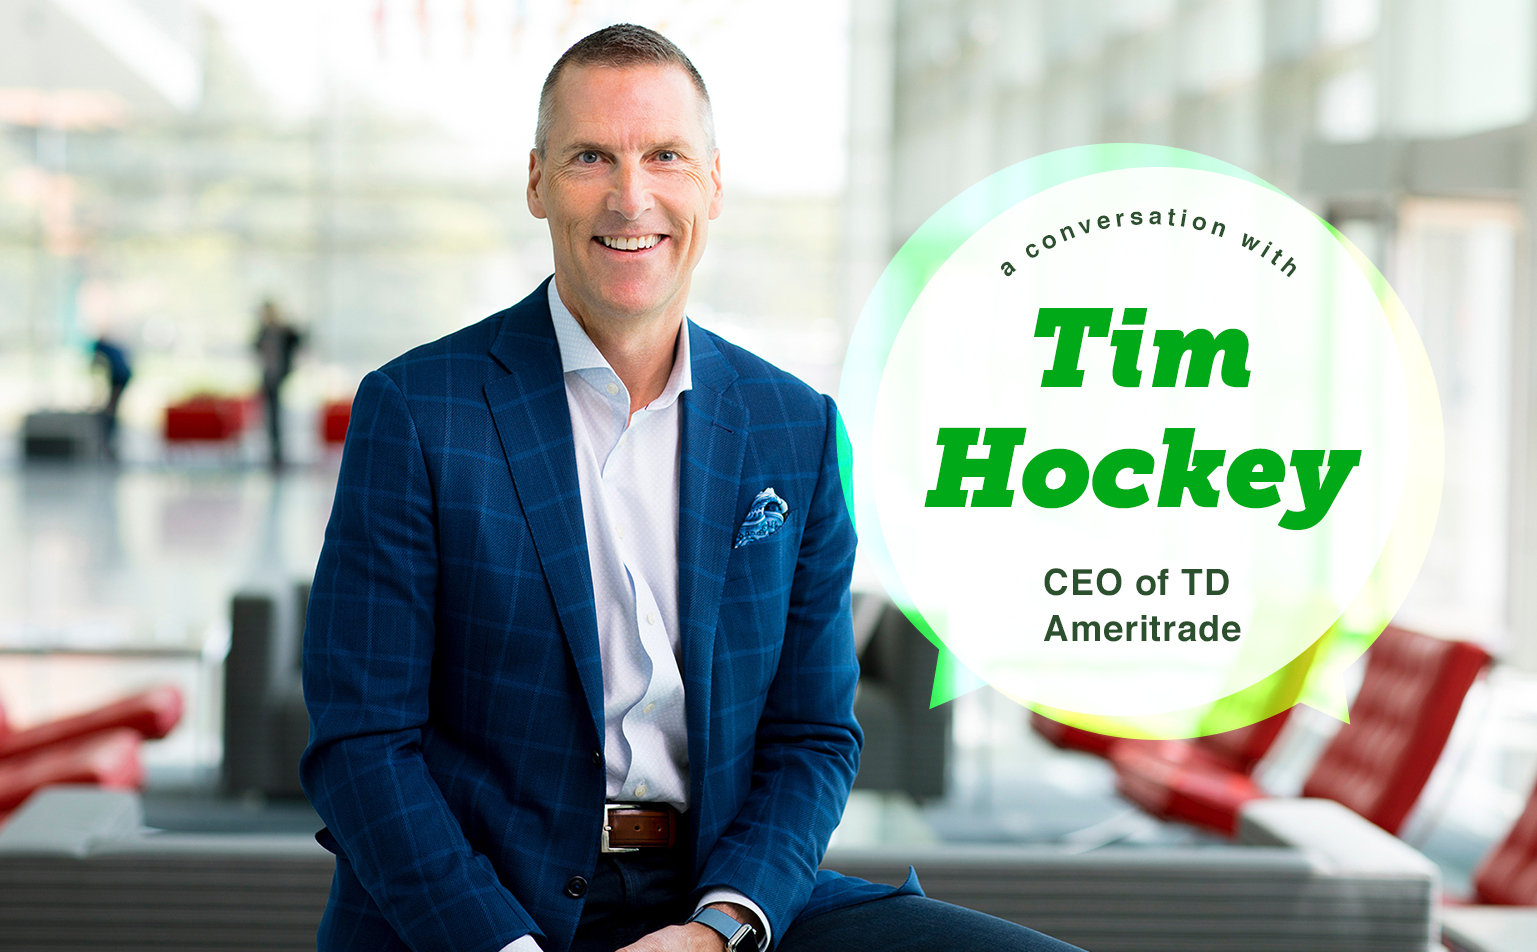 In Conversation with Tim Hockey (CEO @ TD Ameritrade)